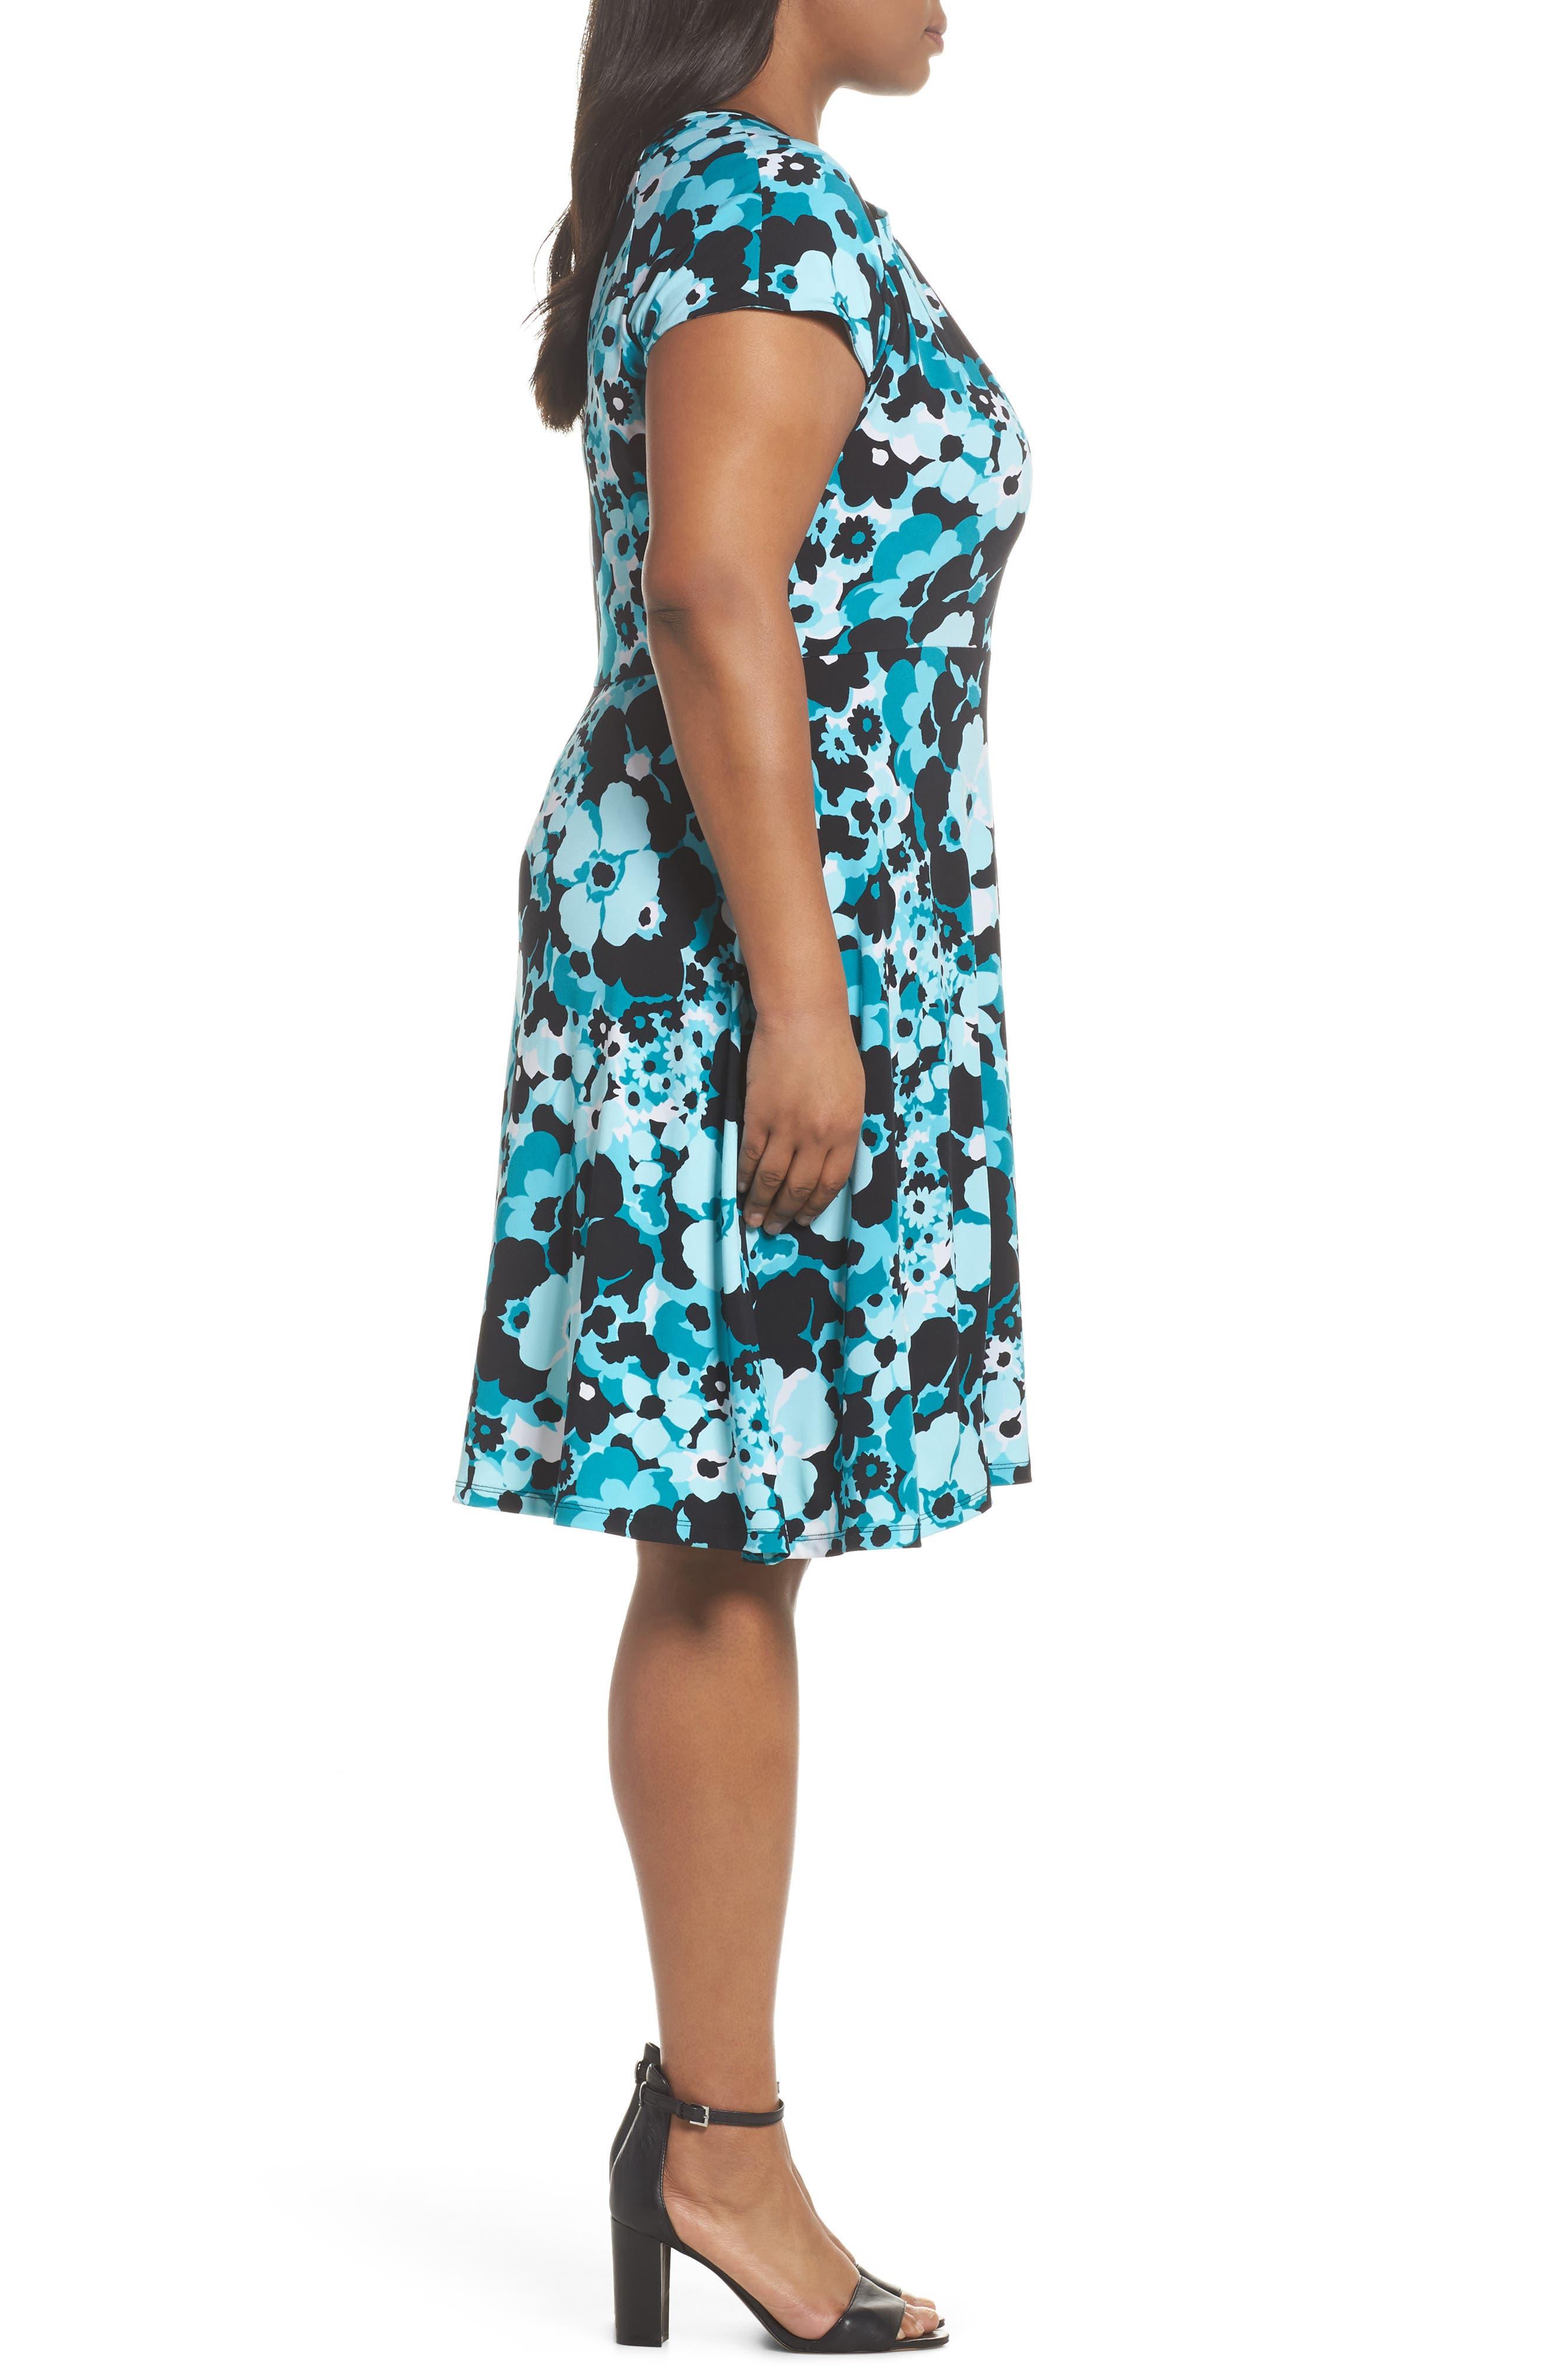 Springtime Floral Cutout Dress,                             Alternate thumbnail 3, color,                             494